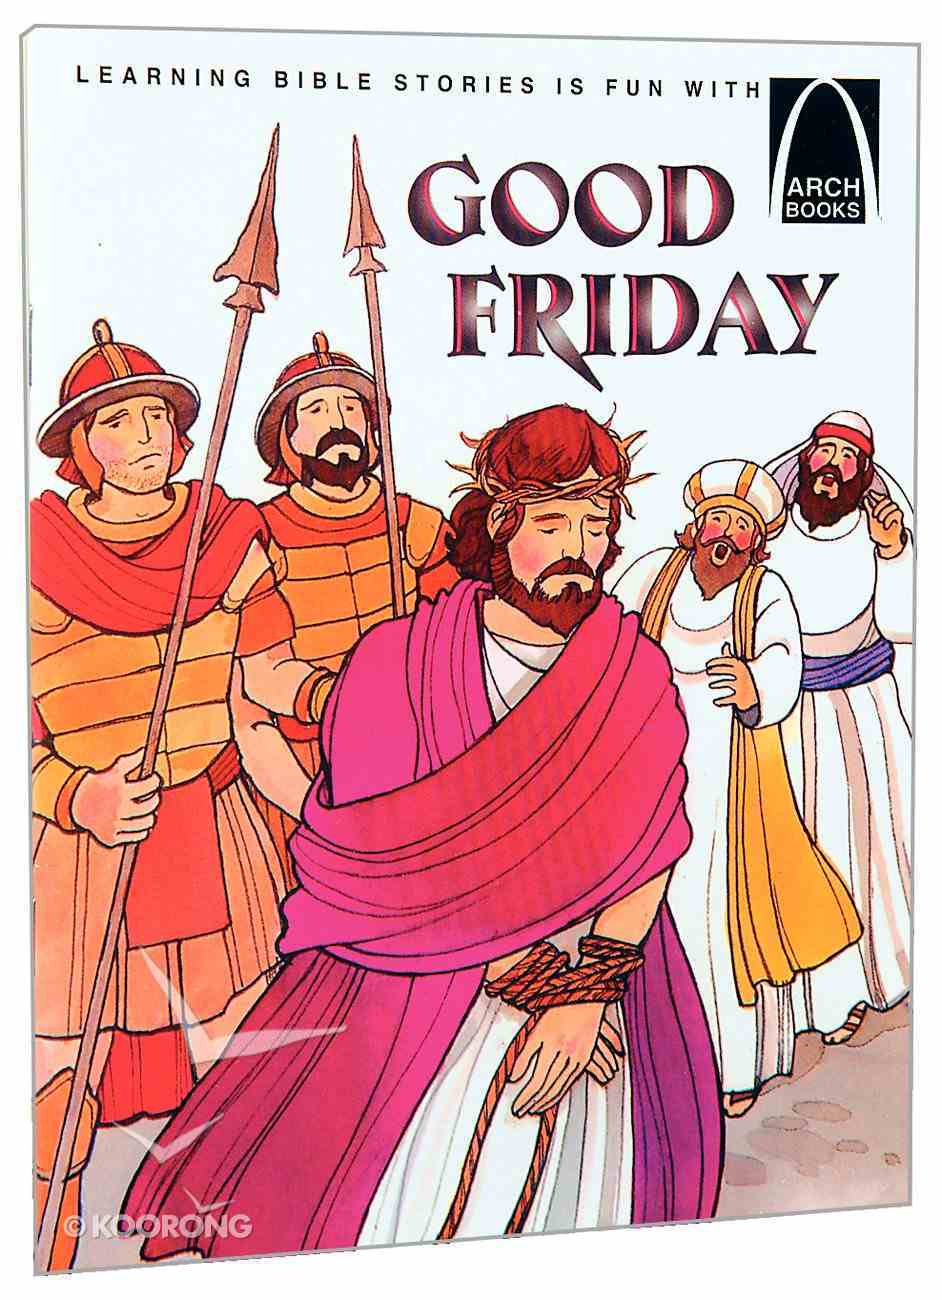 Good Friday (Arch Books Series) Paperback